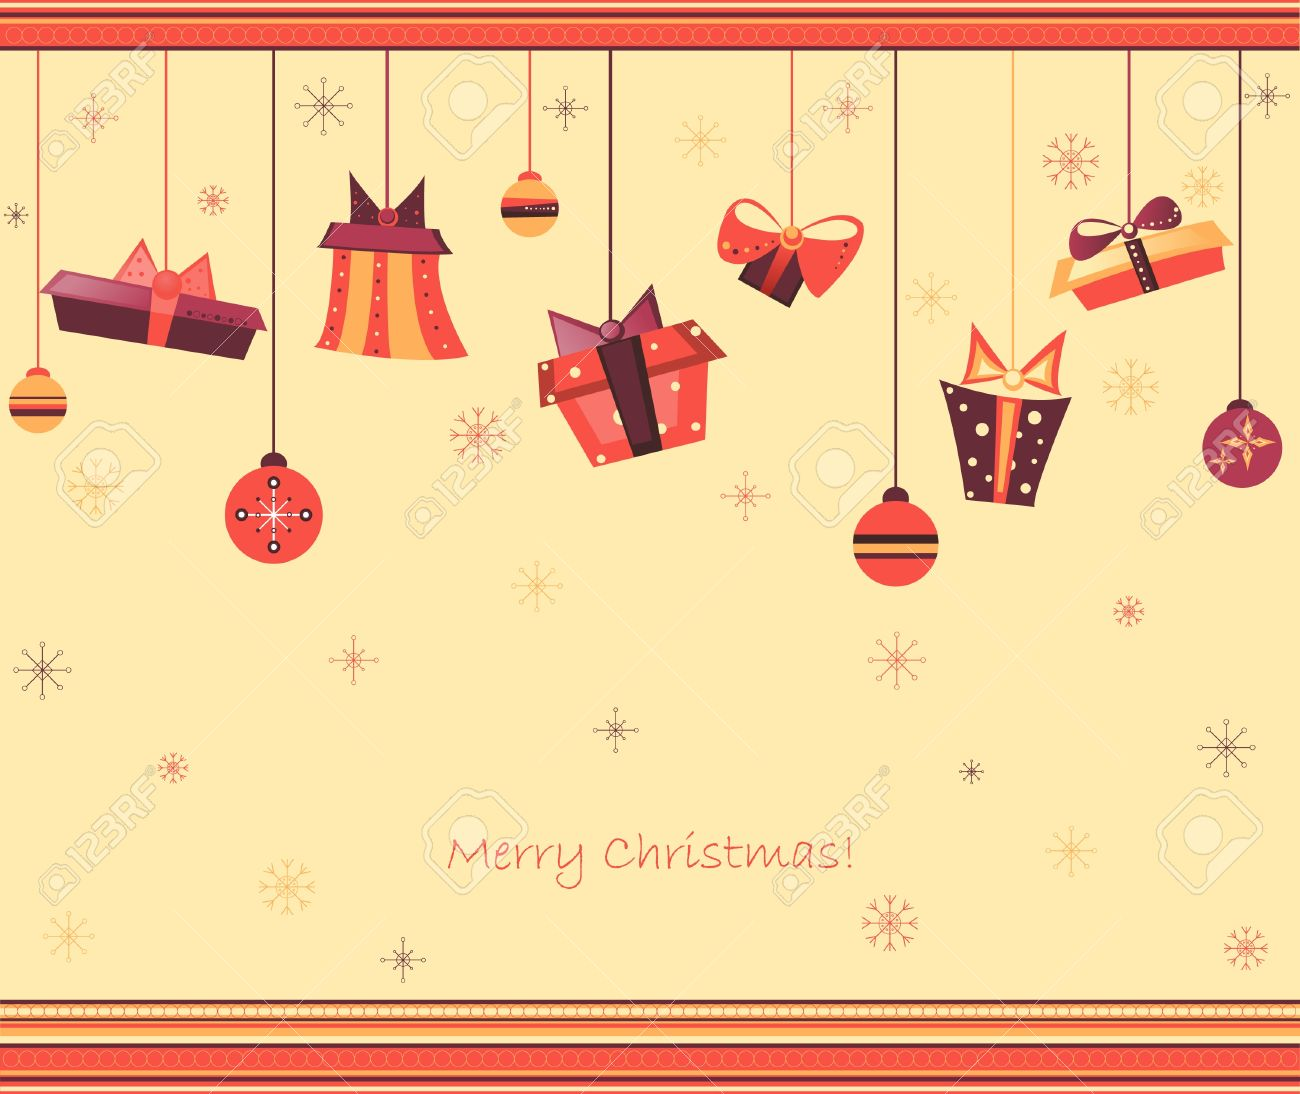 Clip Art Vintage Illustration For Christmas Greeting Card With.